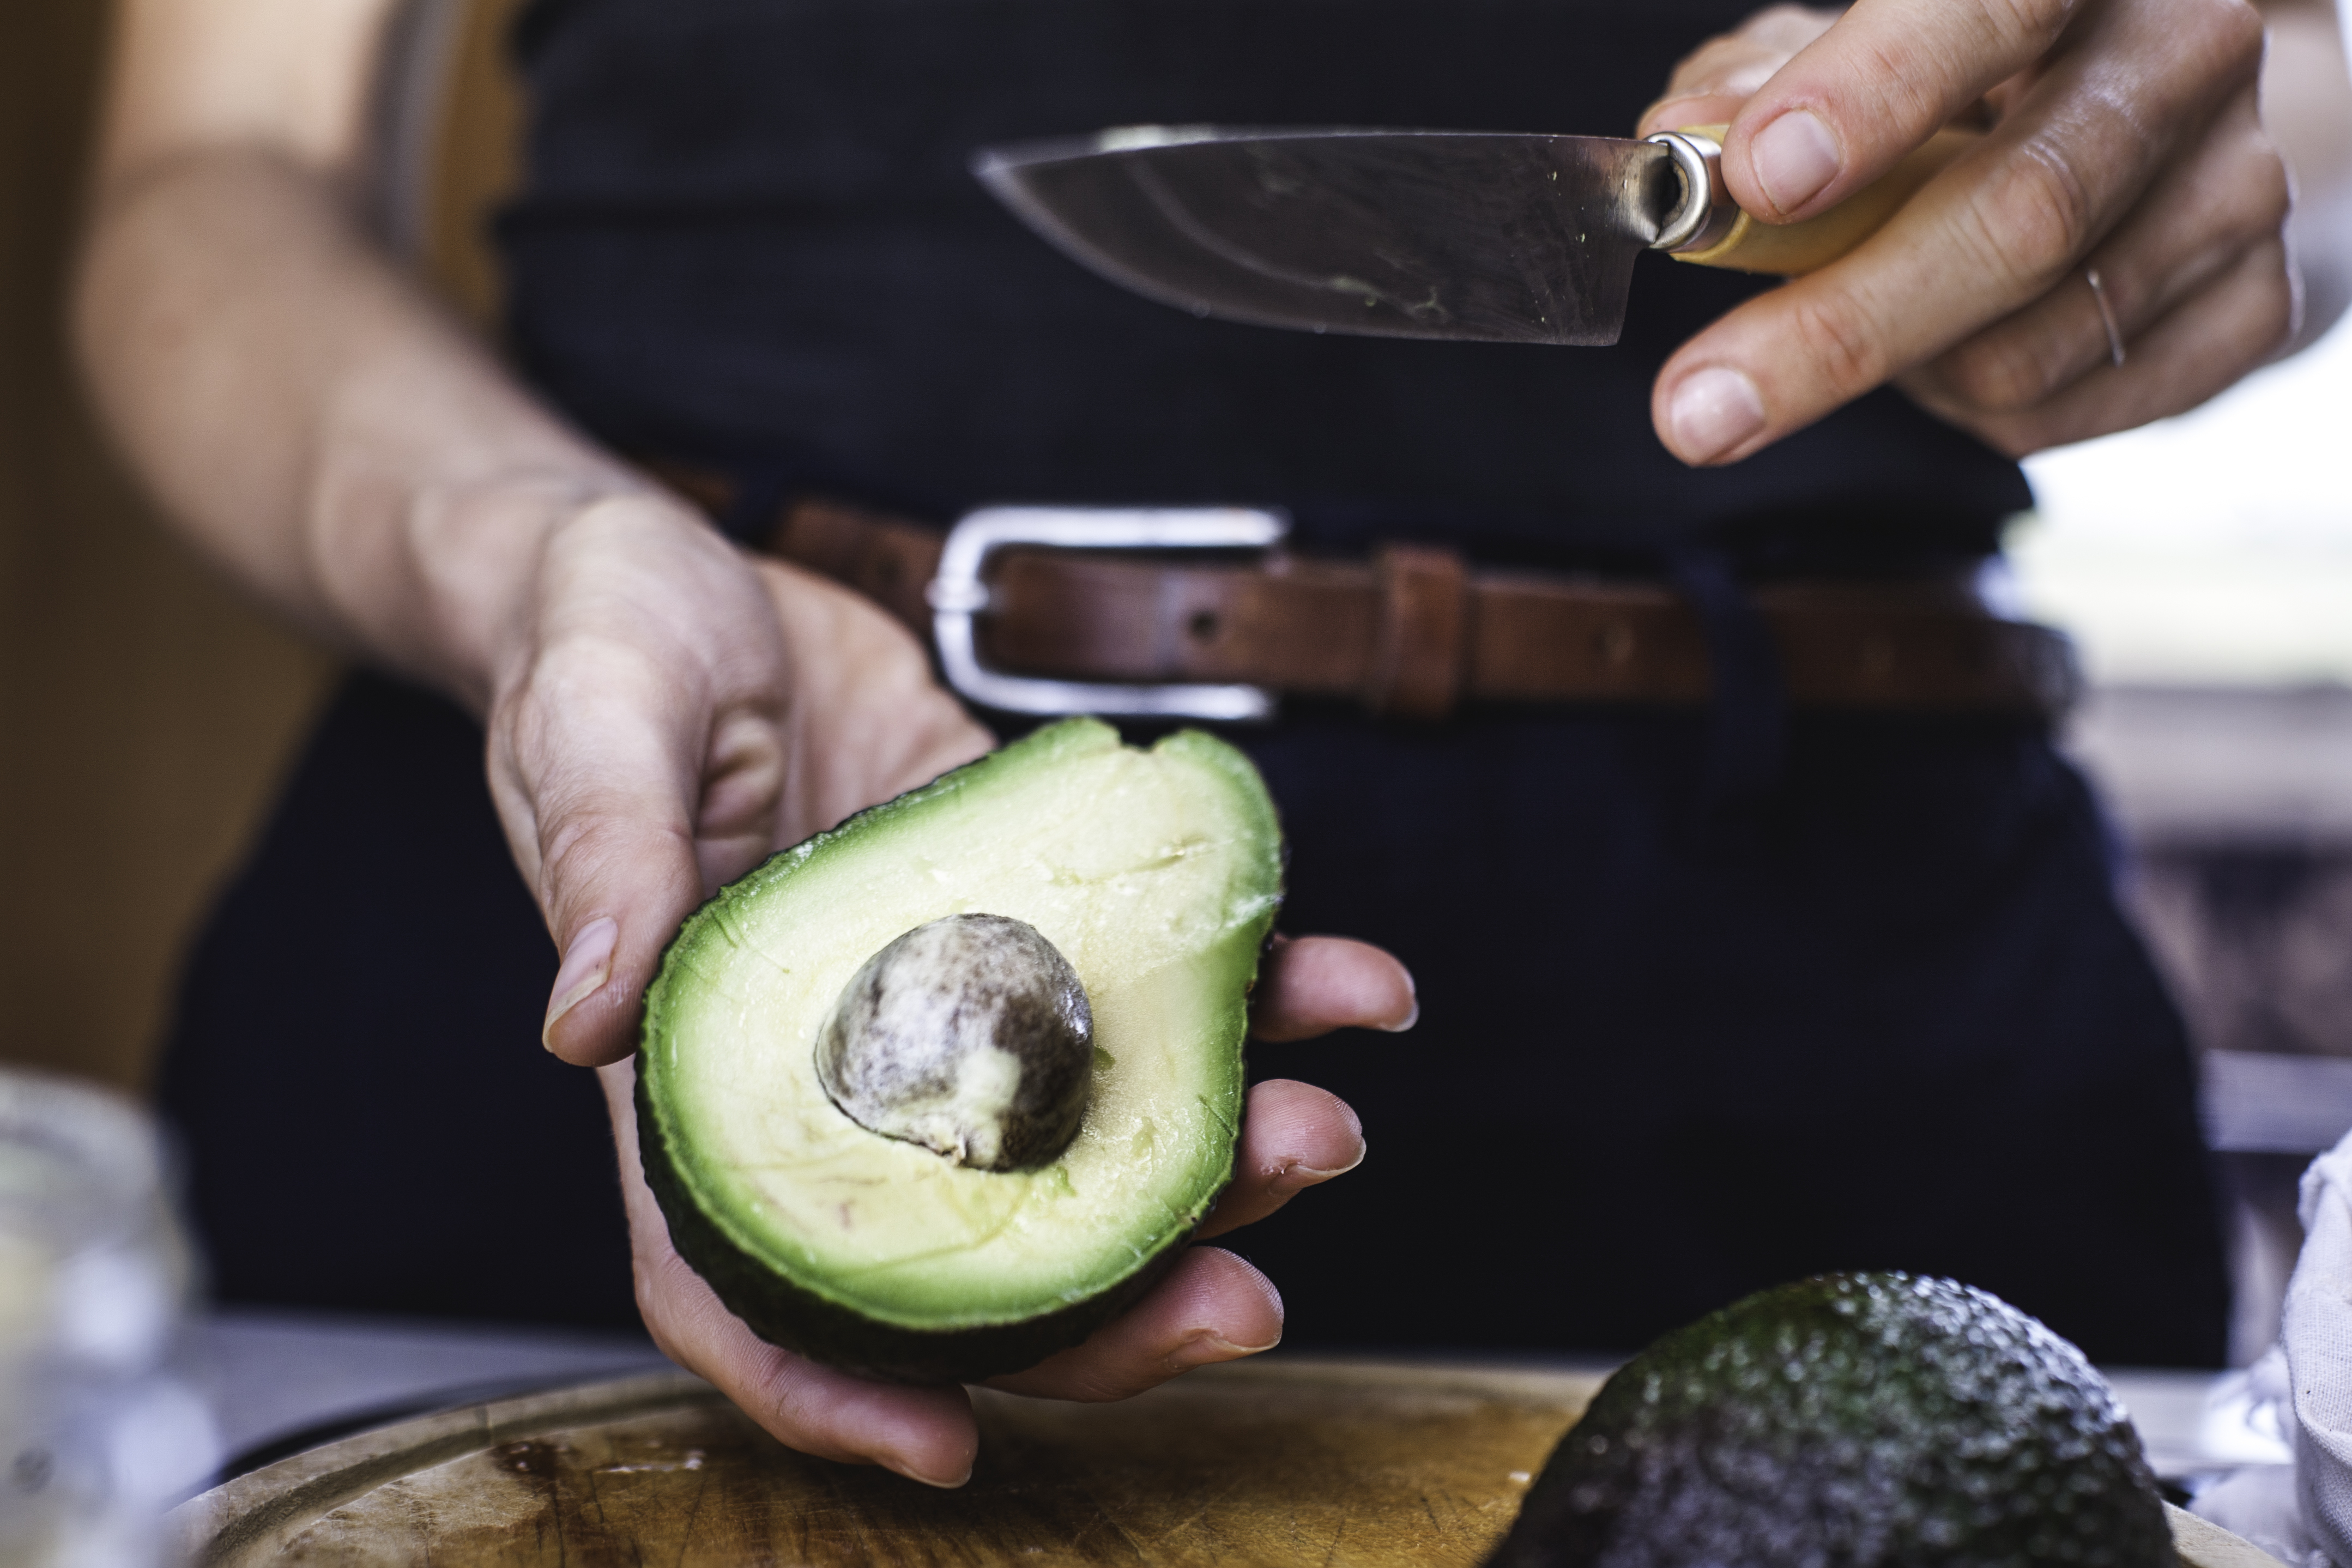 These Universities Want to Pay You to Eat Avocados Every Day for 6 Months